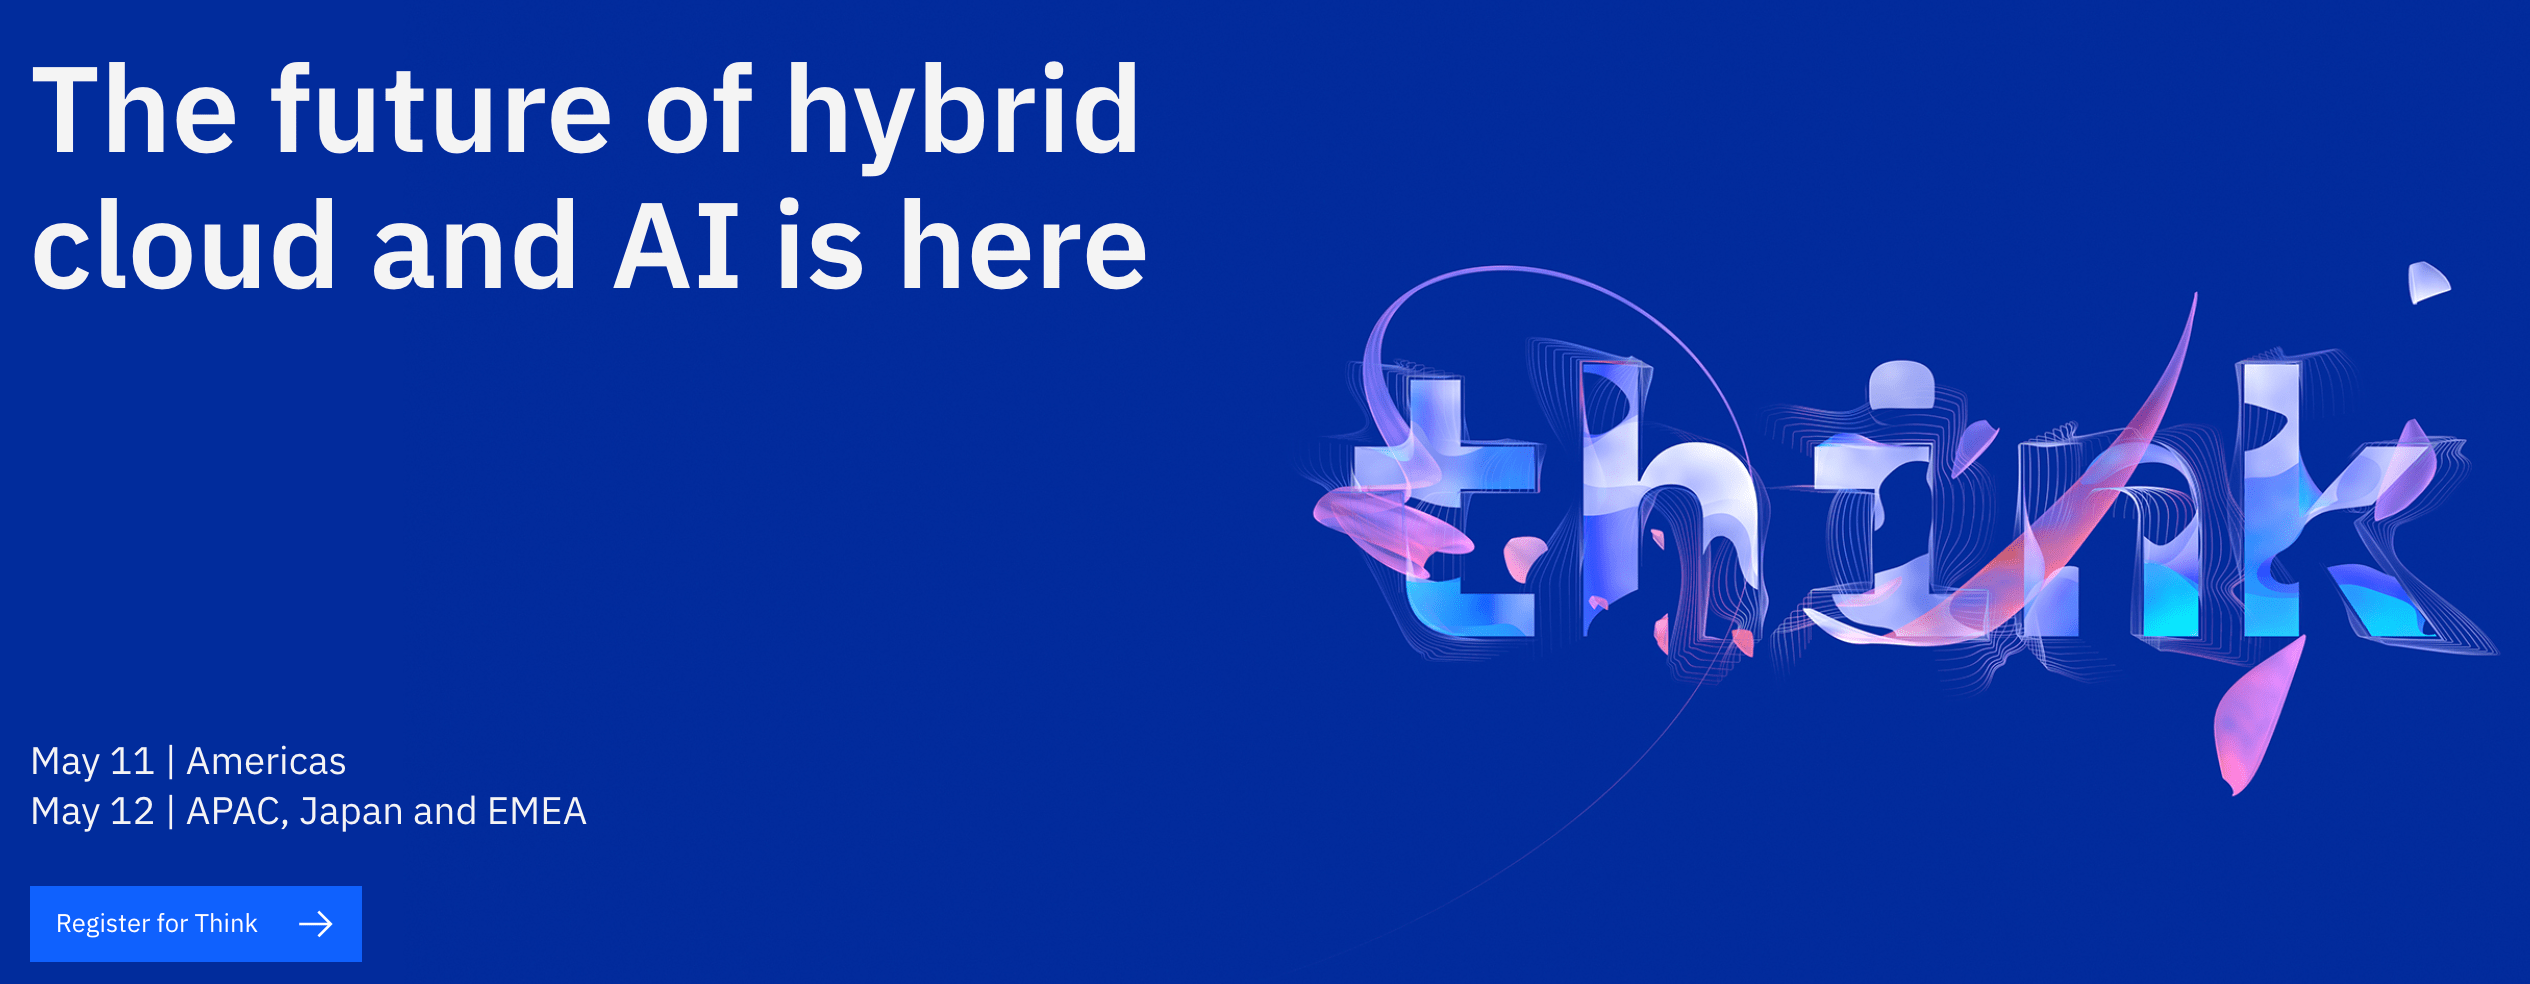 The IBM Think conference website homepage design